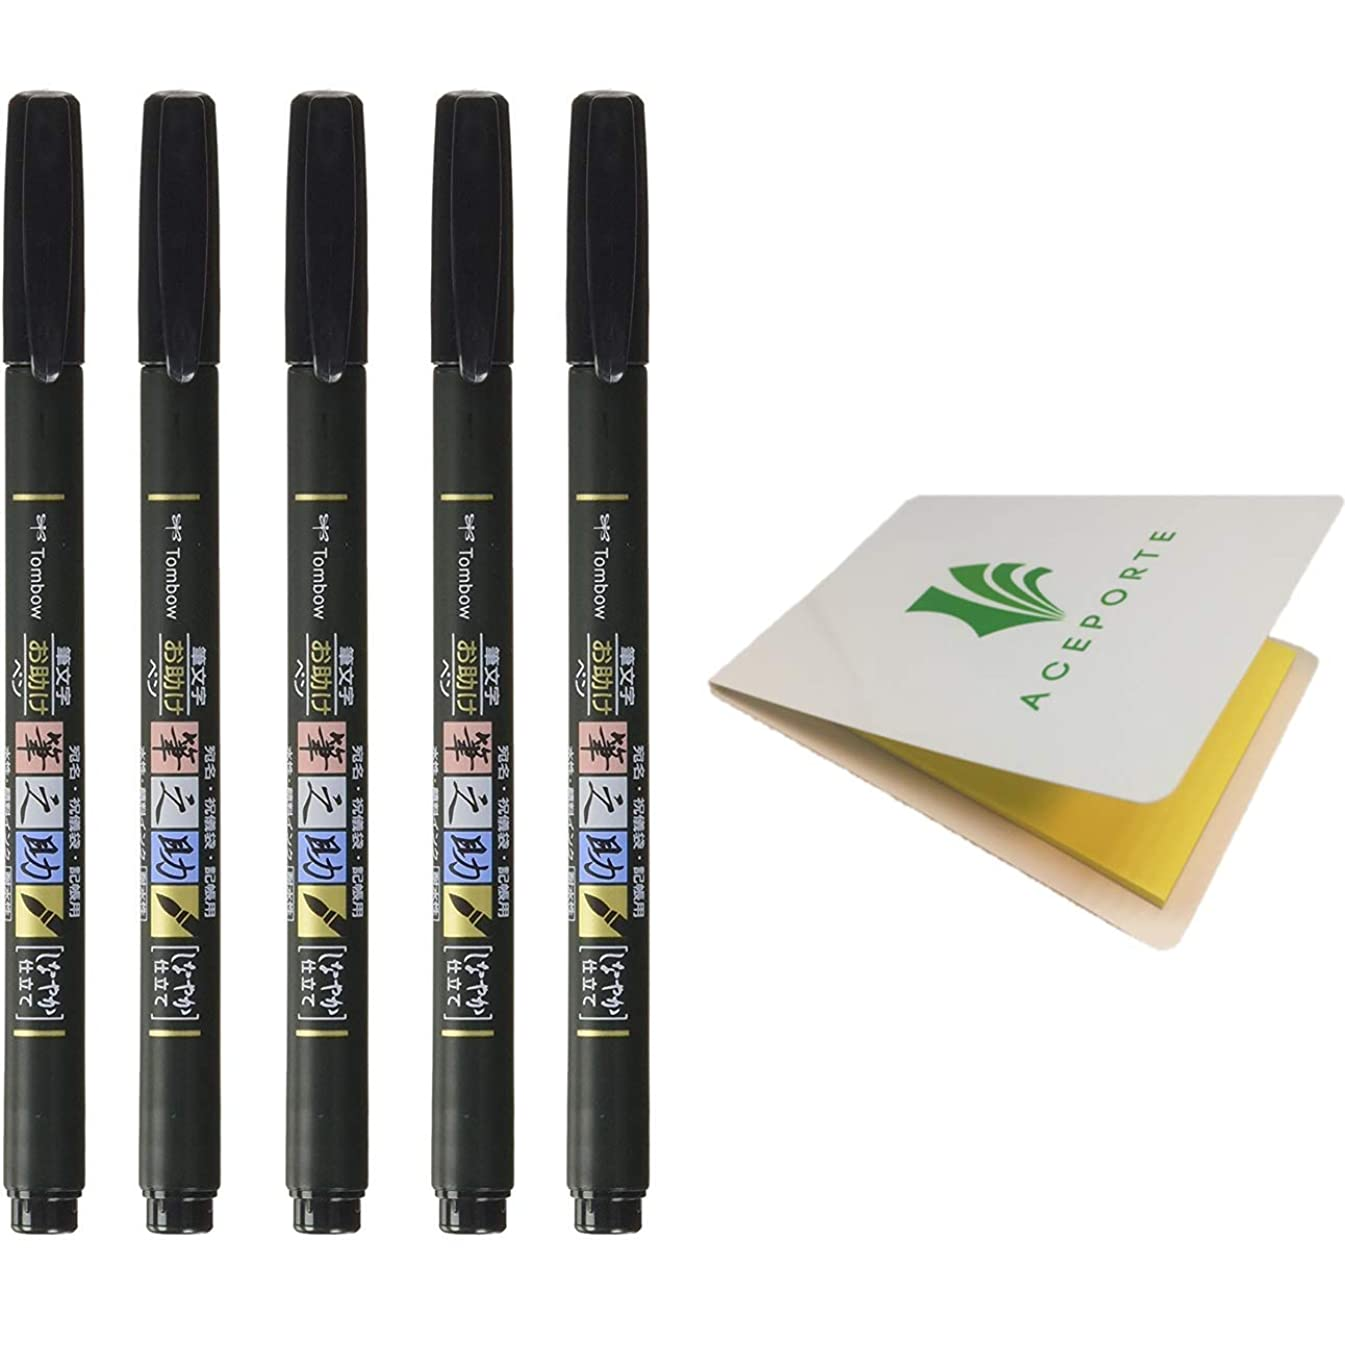 Tombow Fudenosuke Fude Brush Pen Soft (GCD-112) x5 Set, with Original Sticky Notes – Great for Calligraphy, Art Drawings, Illustration, Manga